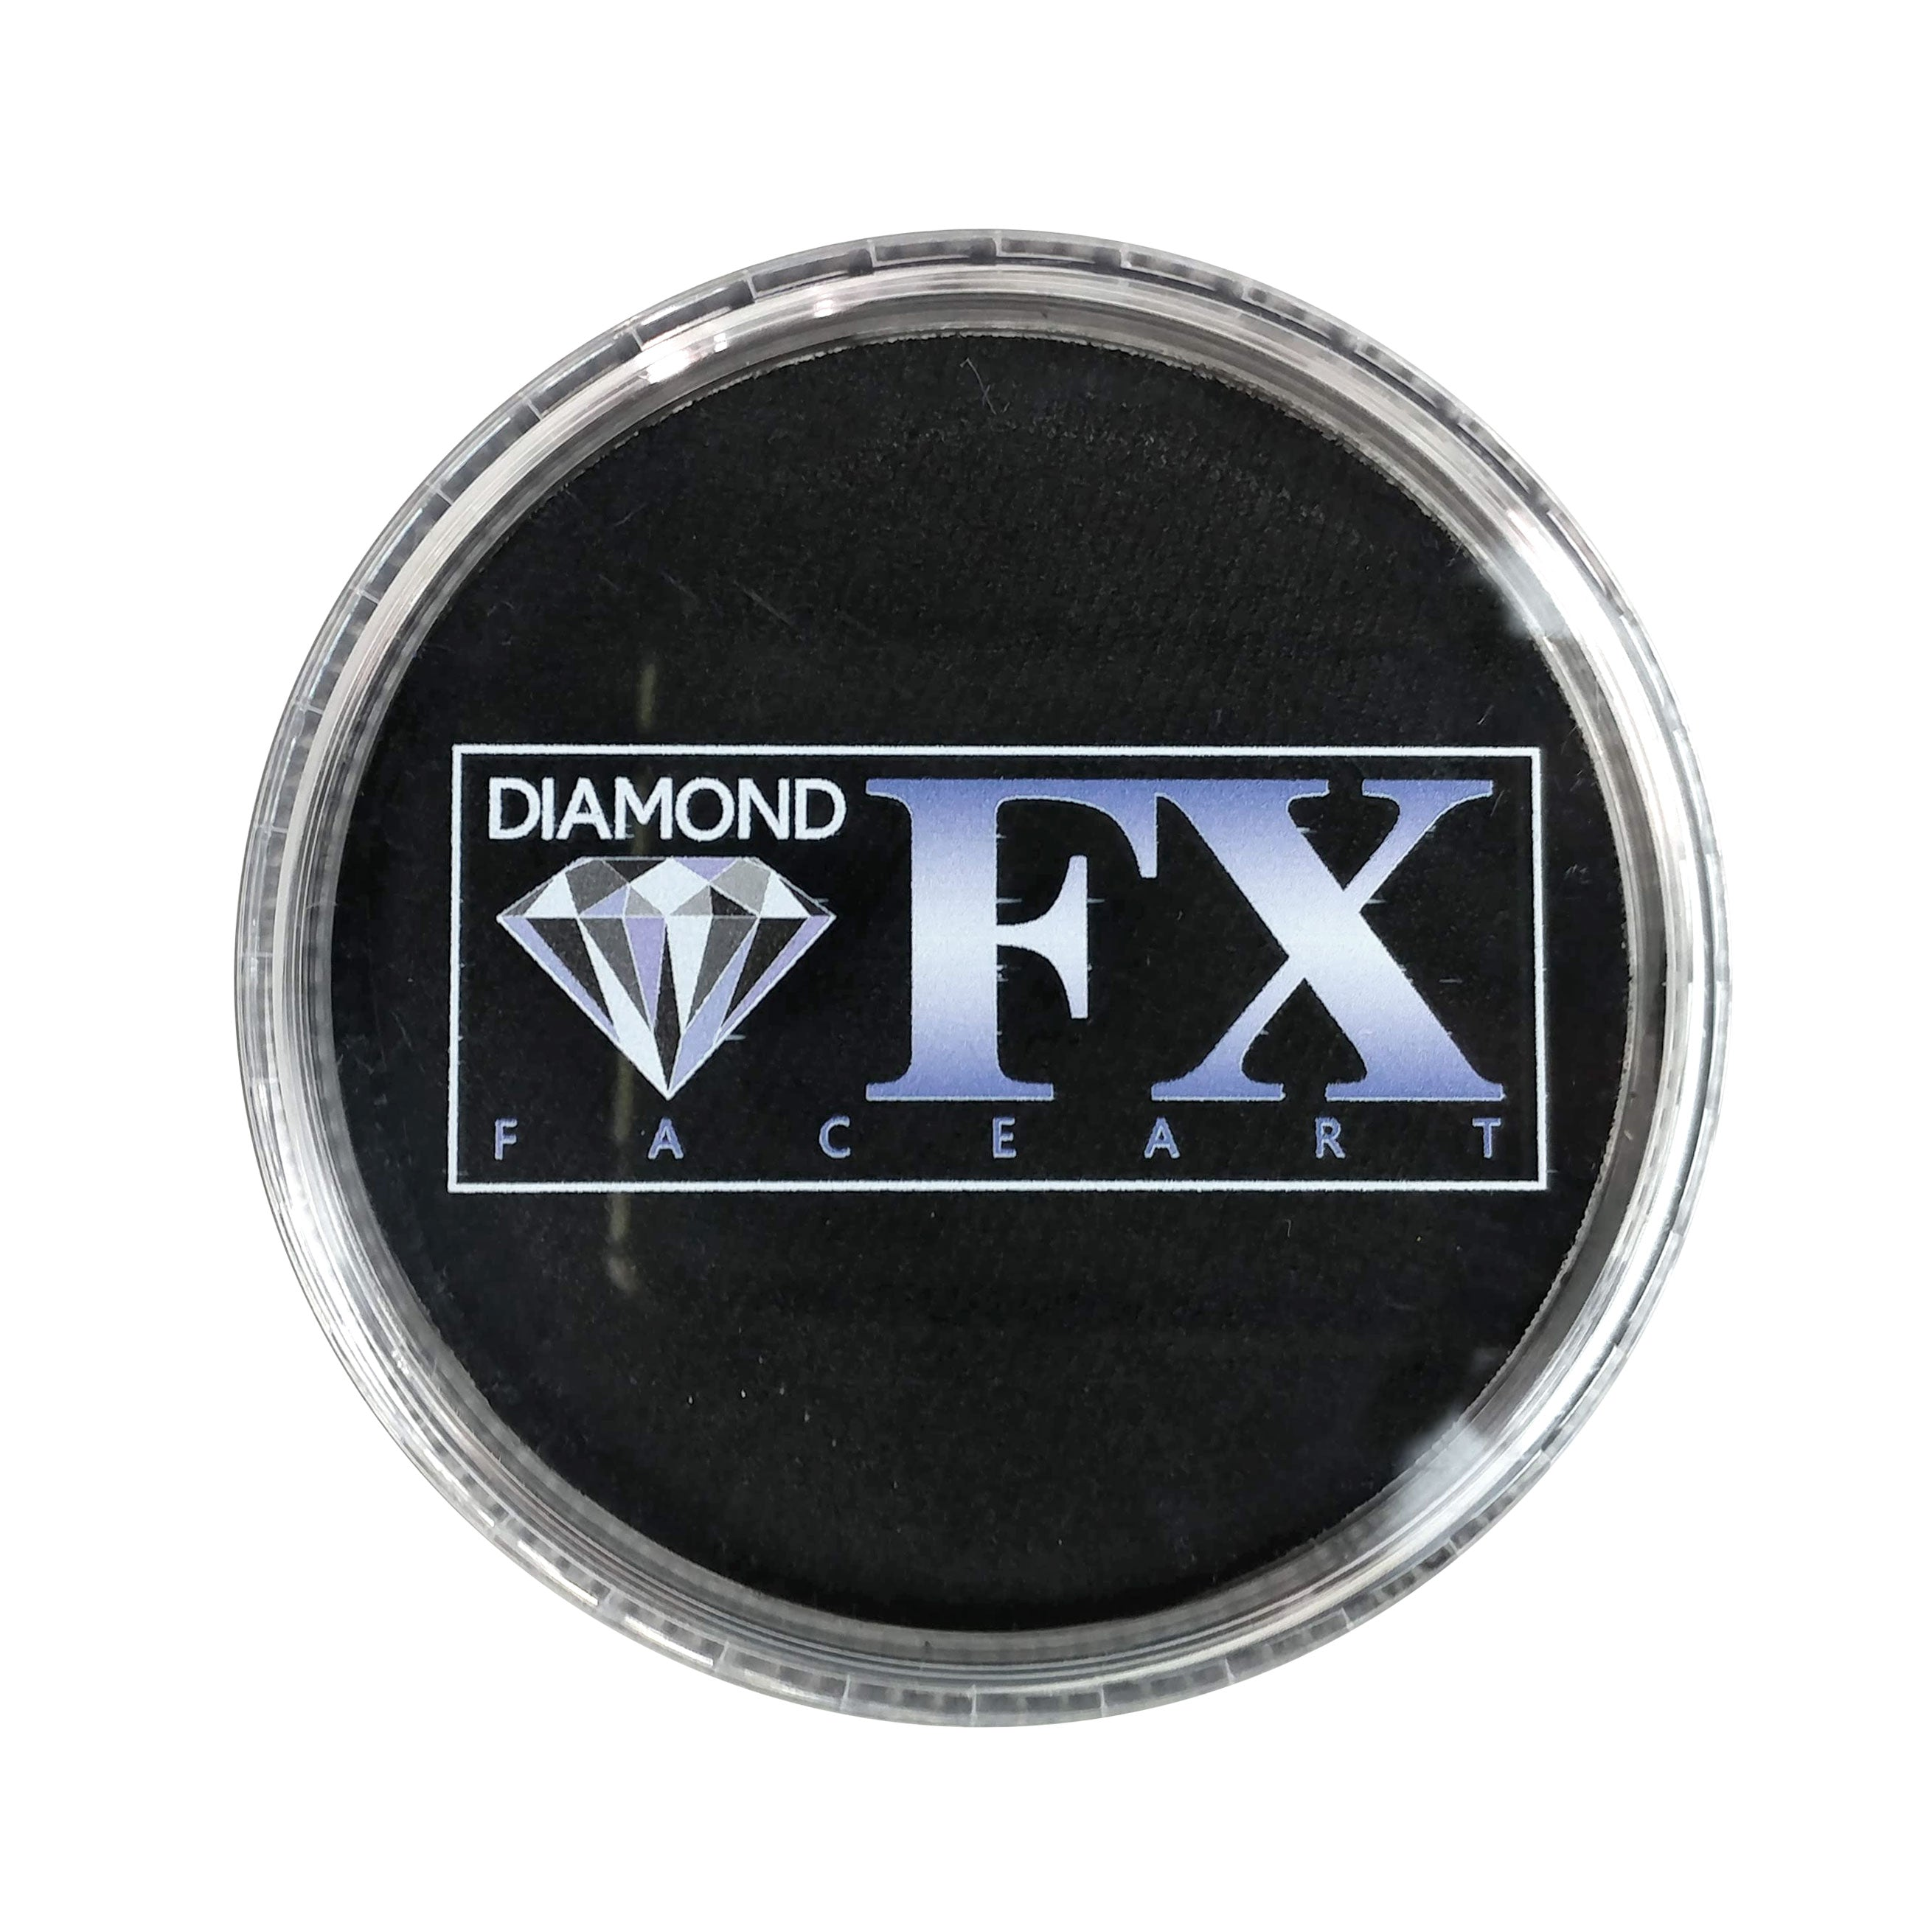 Diamond FX Black Essential Cake 30g / 45g / 90g